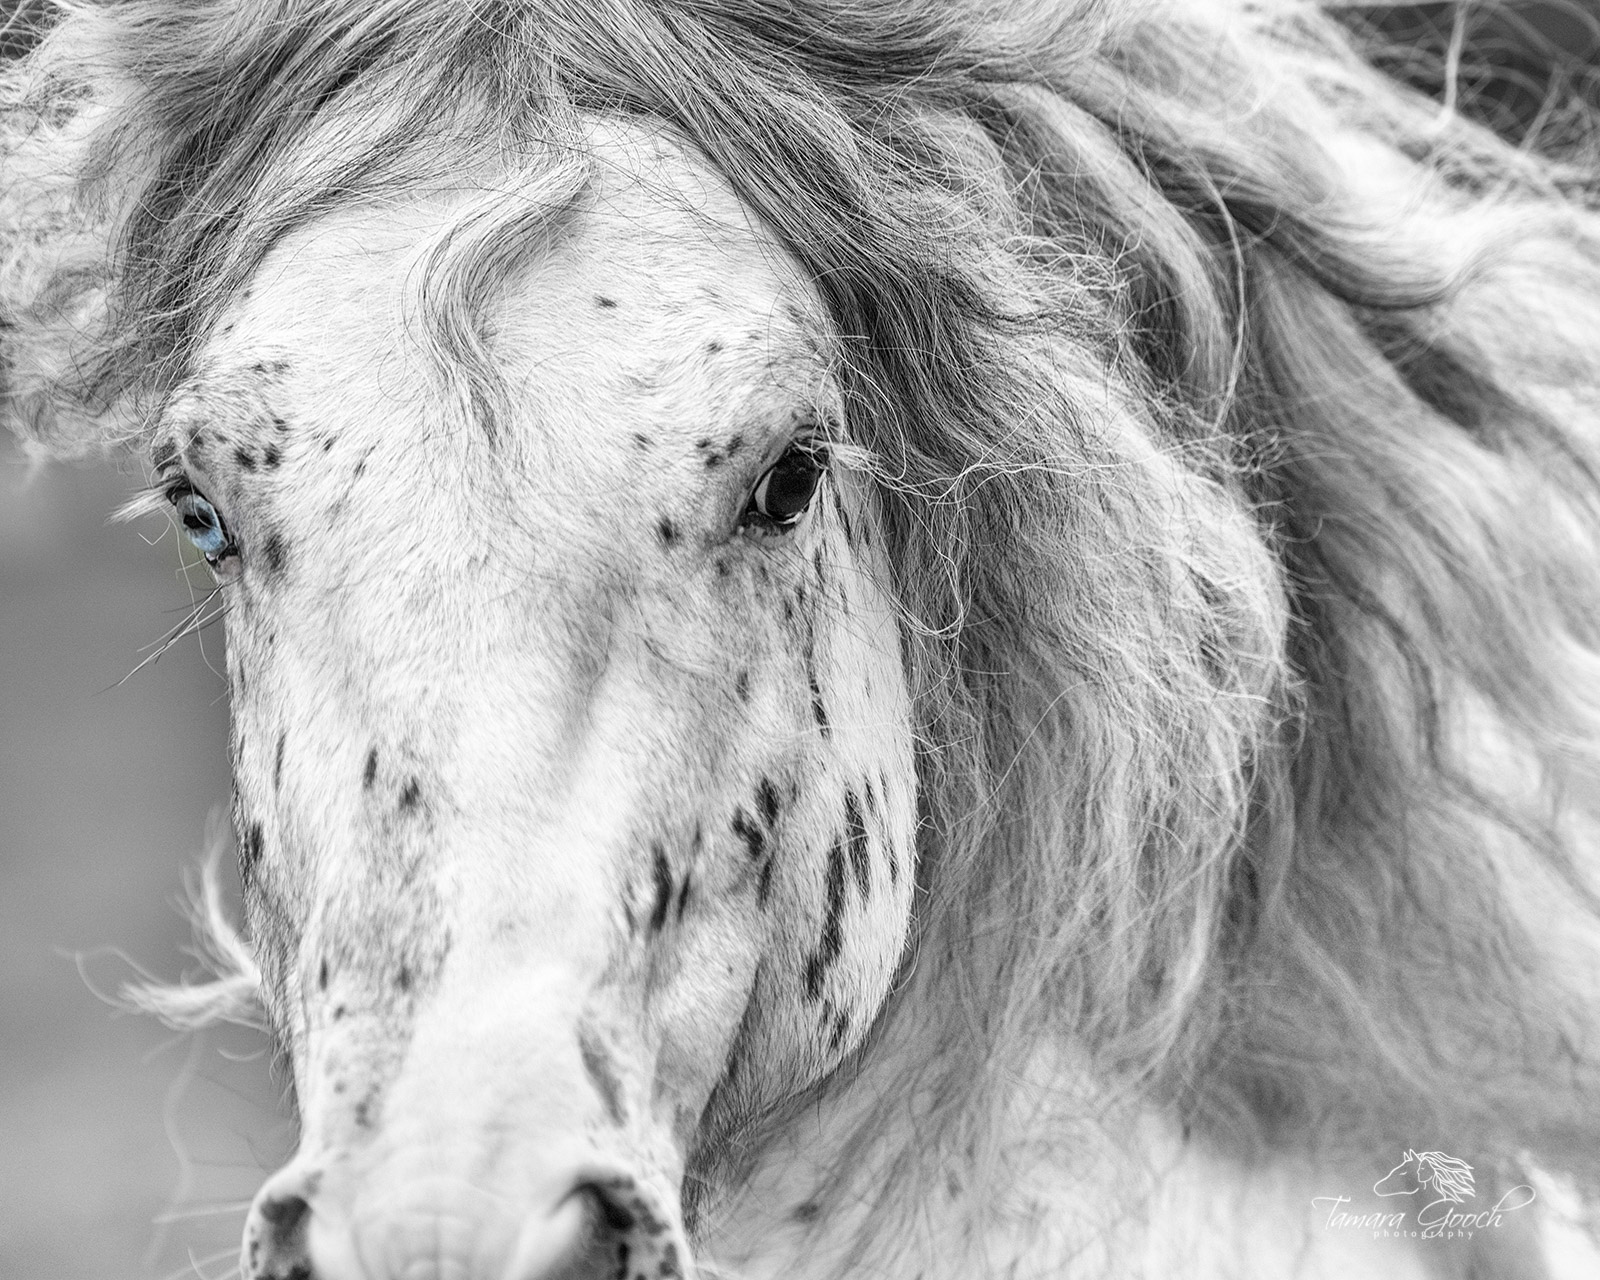 Gypsy Vanner, Gypsy horses, assignment, black and white, blue eye, commercial, editorial, equestrian, equestrian lifestyle, equestrian lifestyle photos, equine, equine photographer, equine photography, photo